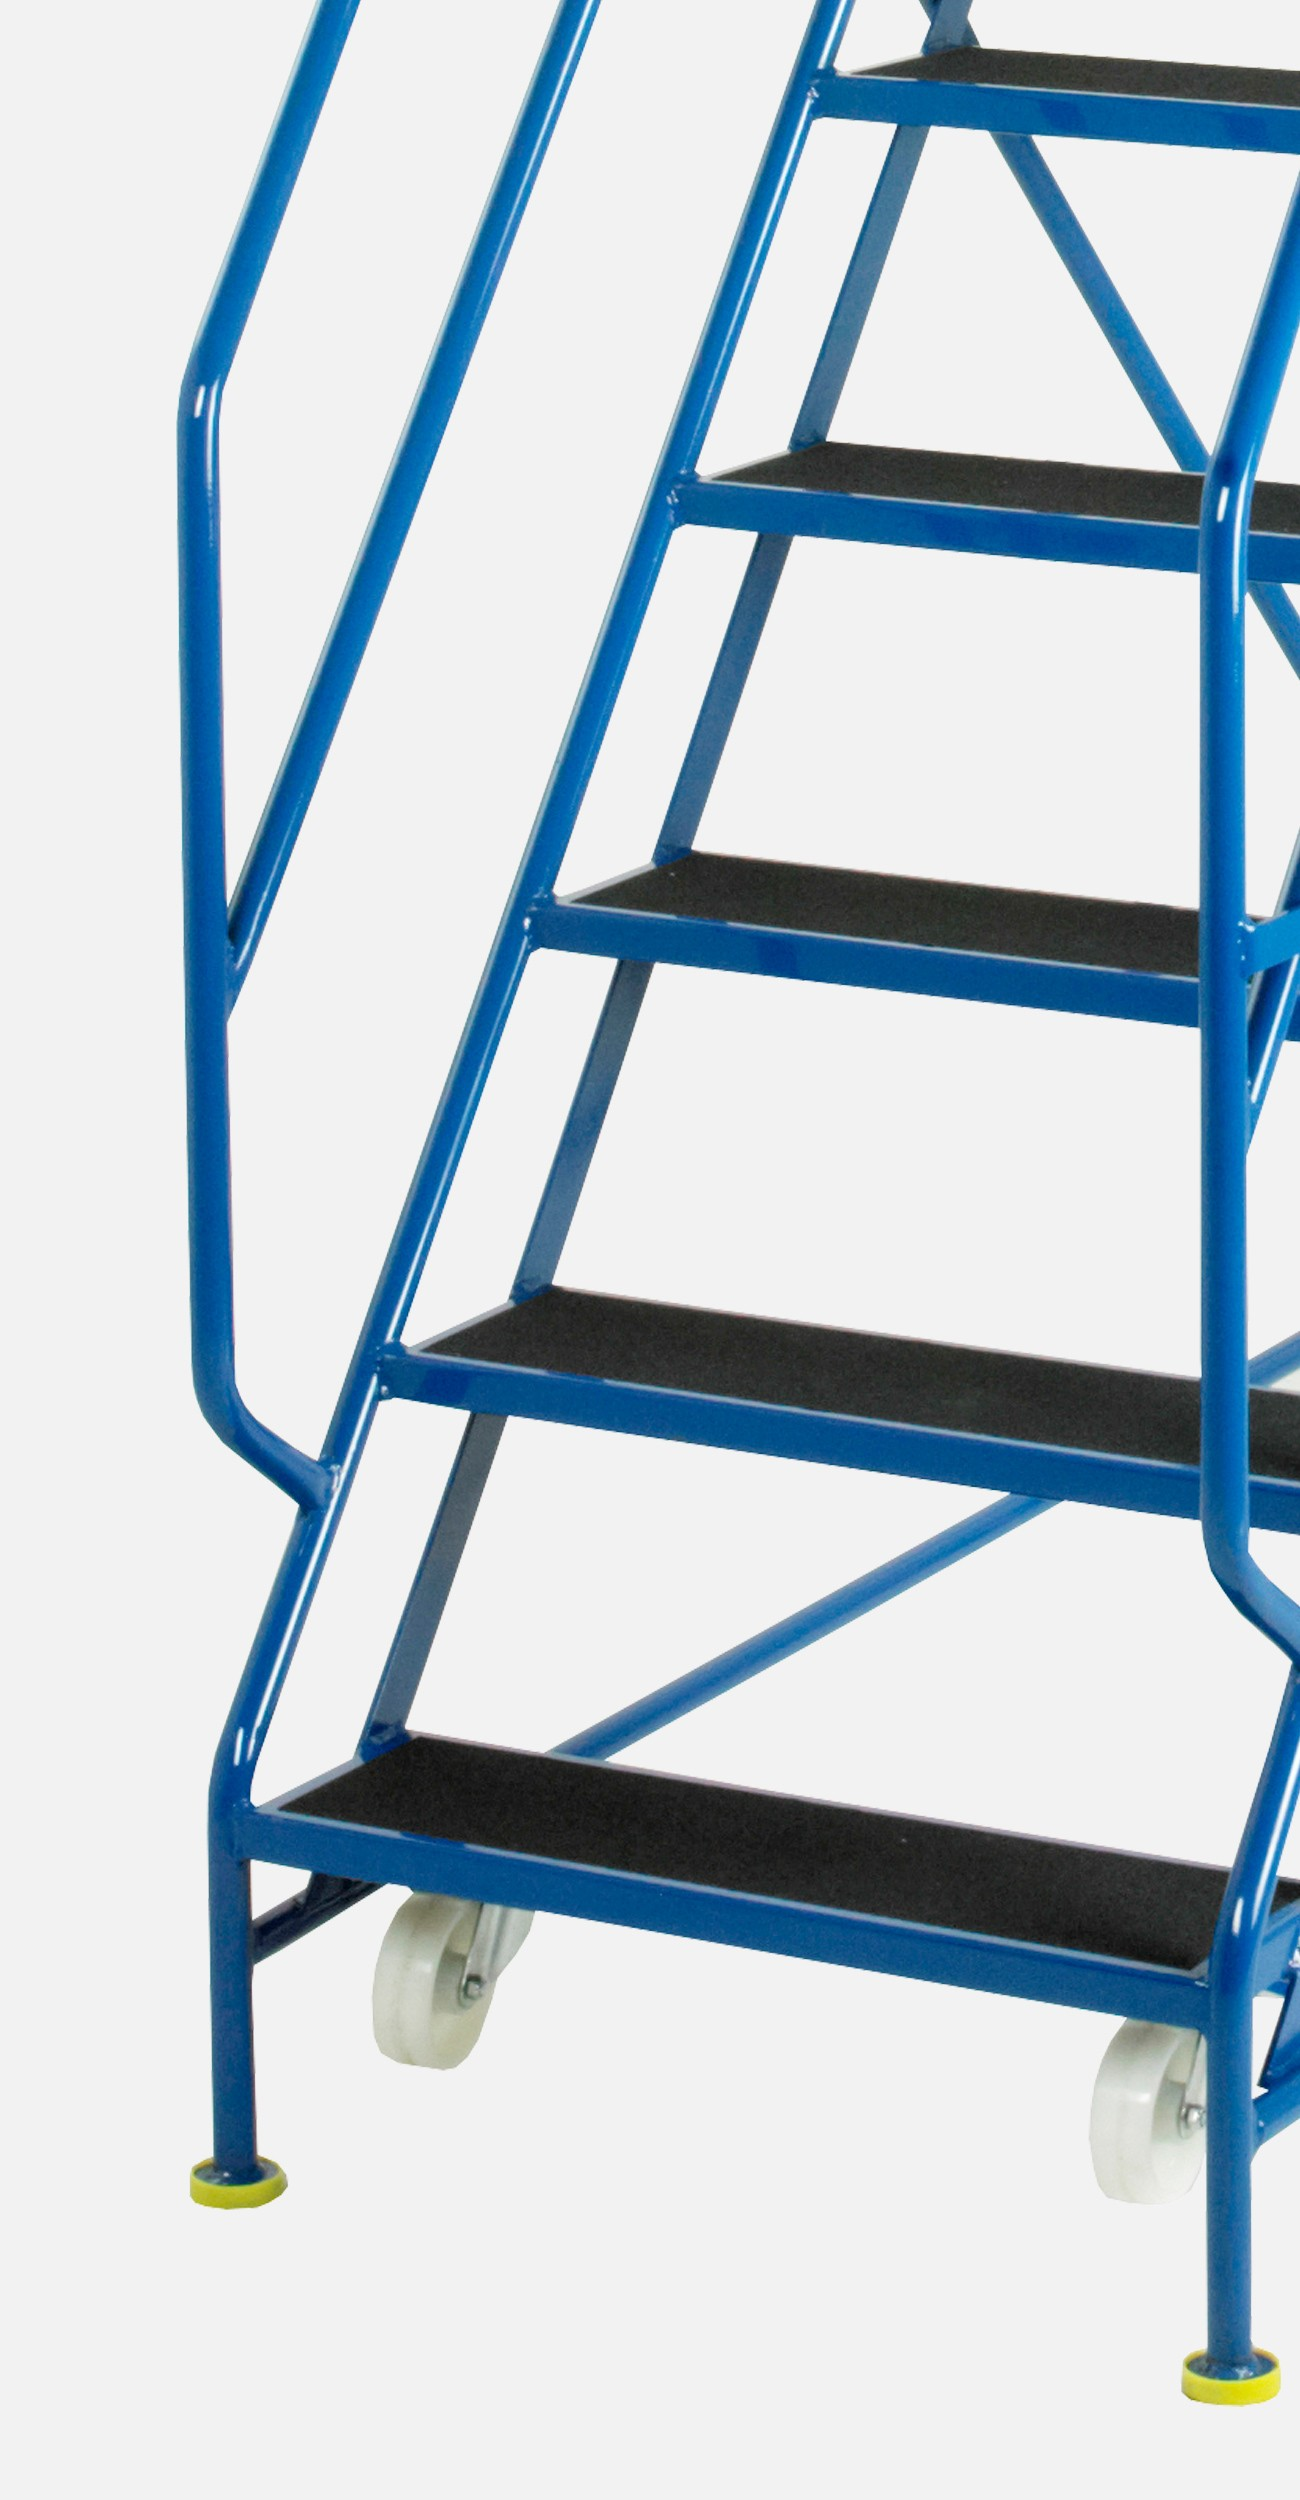 The rungs of mobile steps